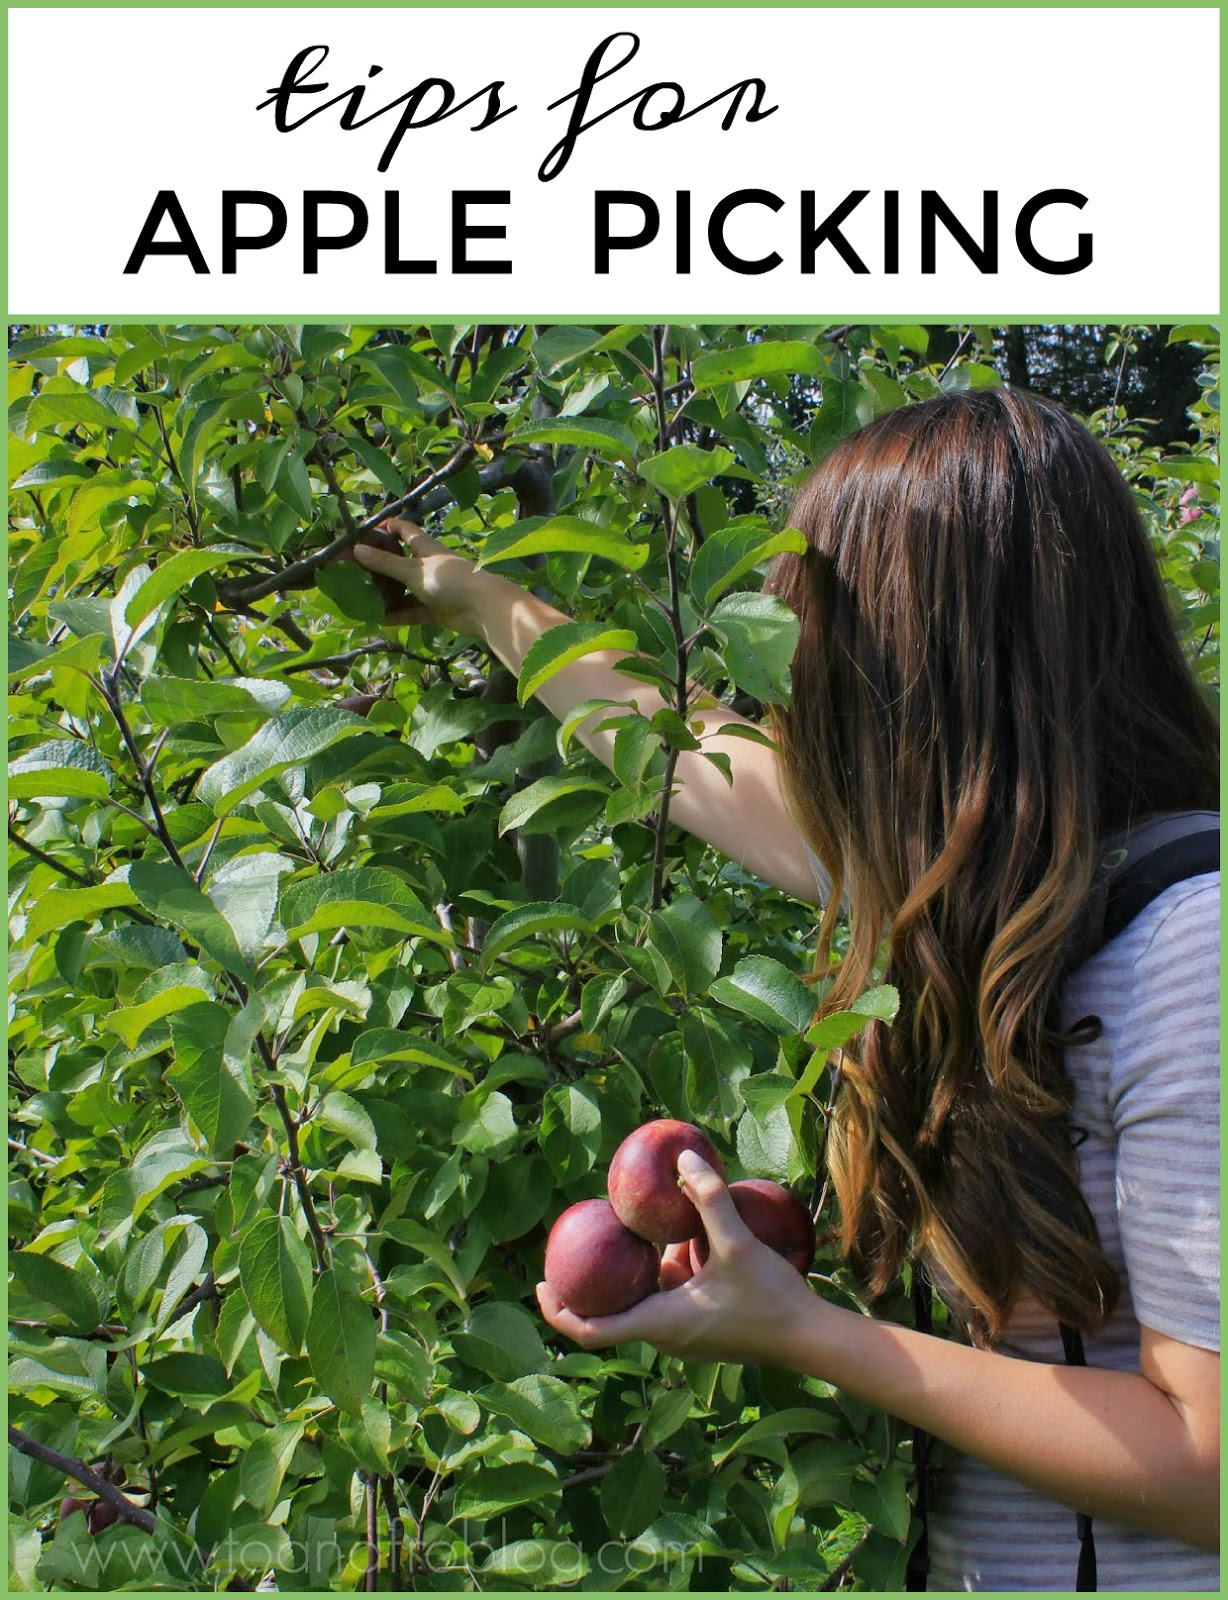 Tips for Apple Picking with Your Family